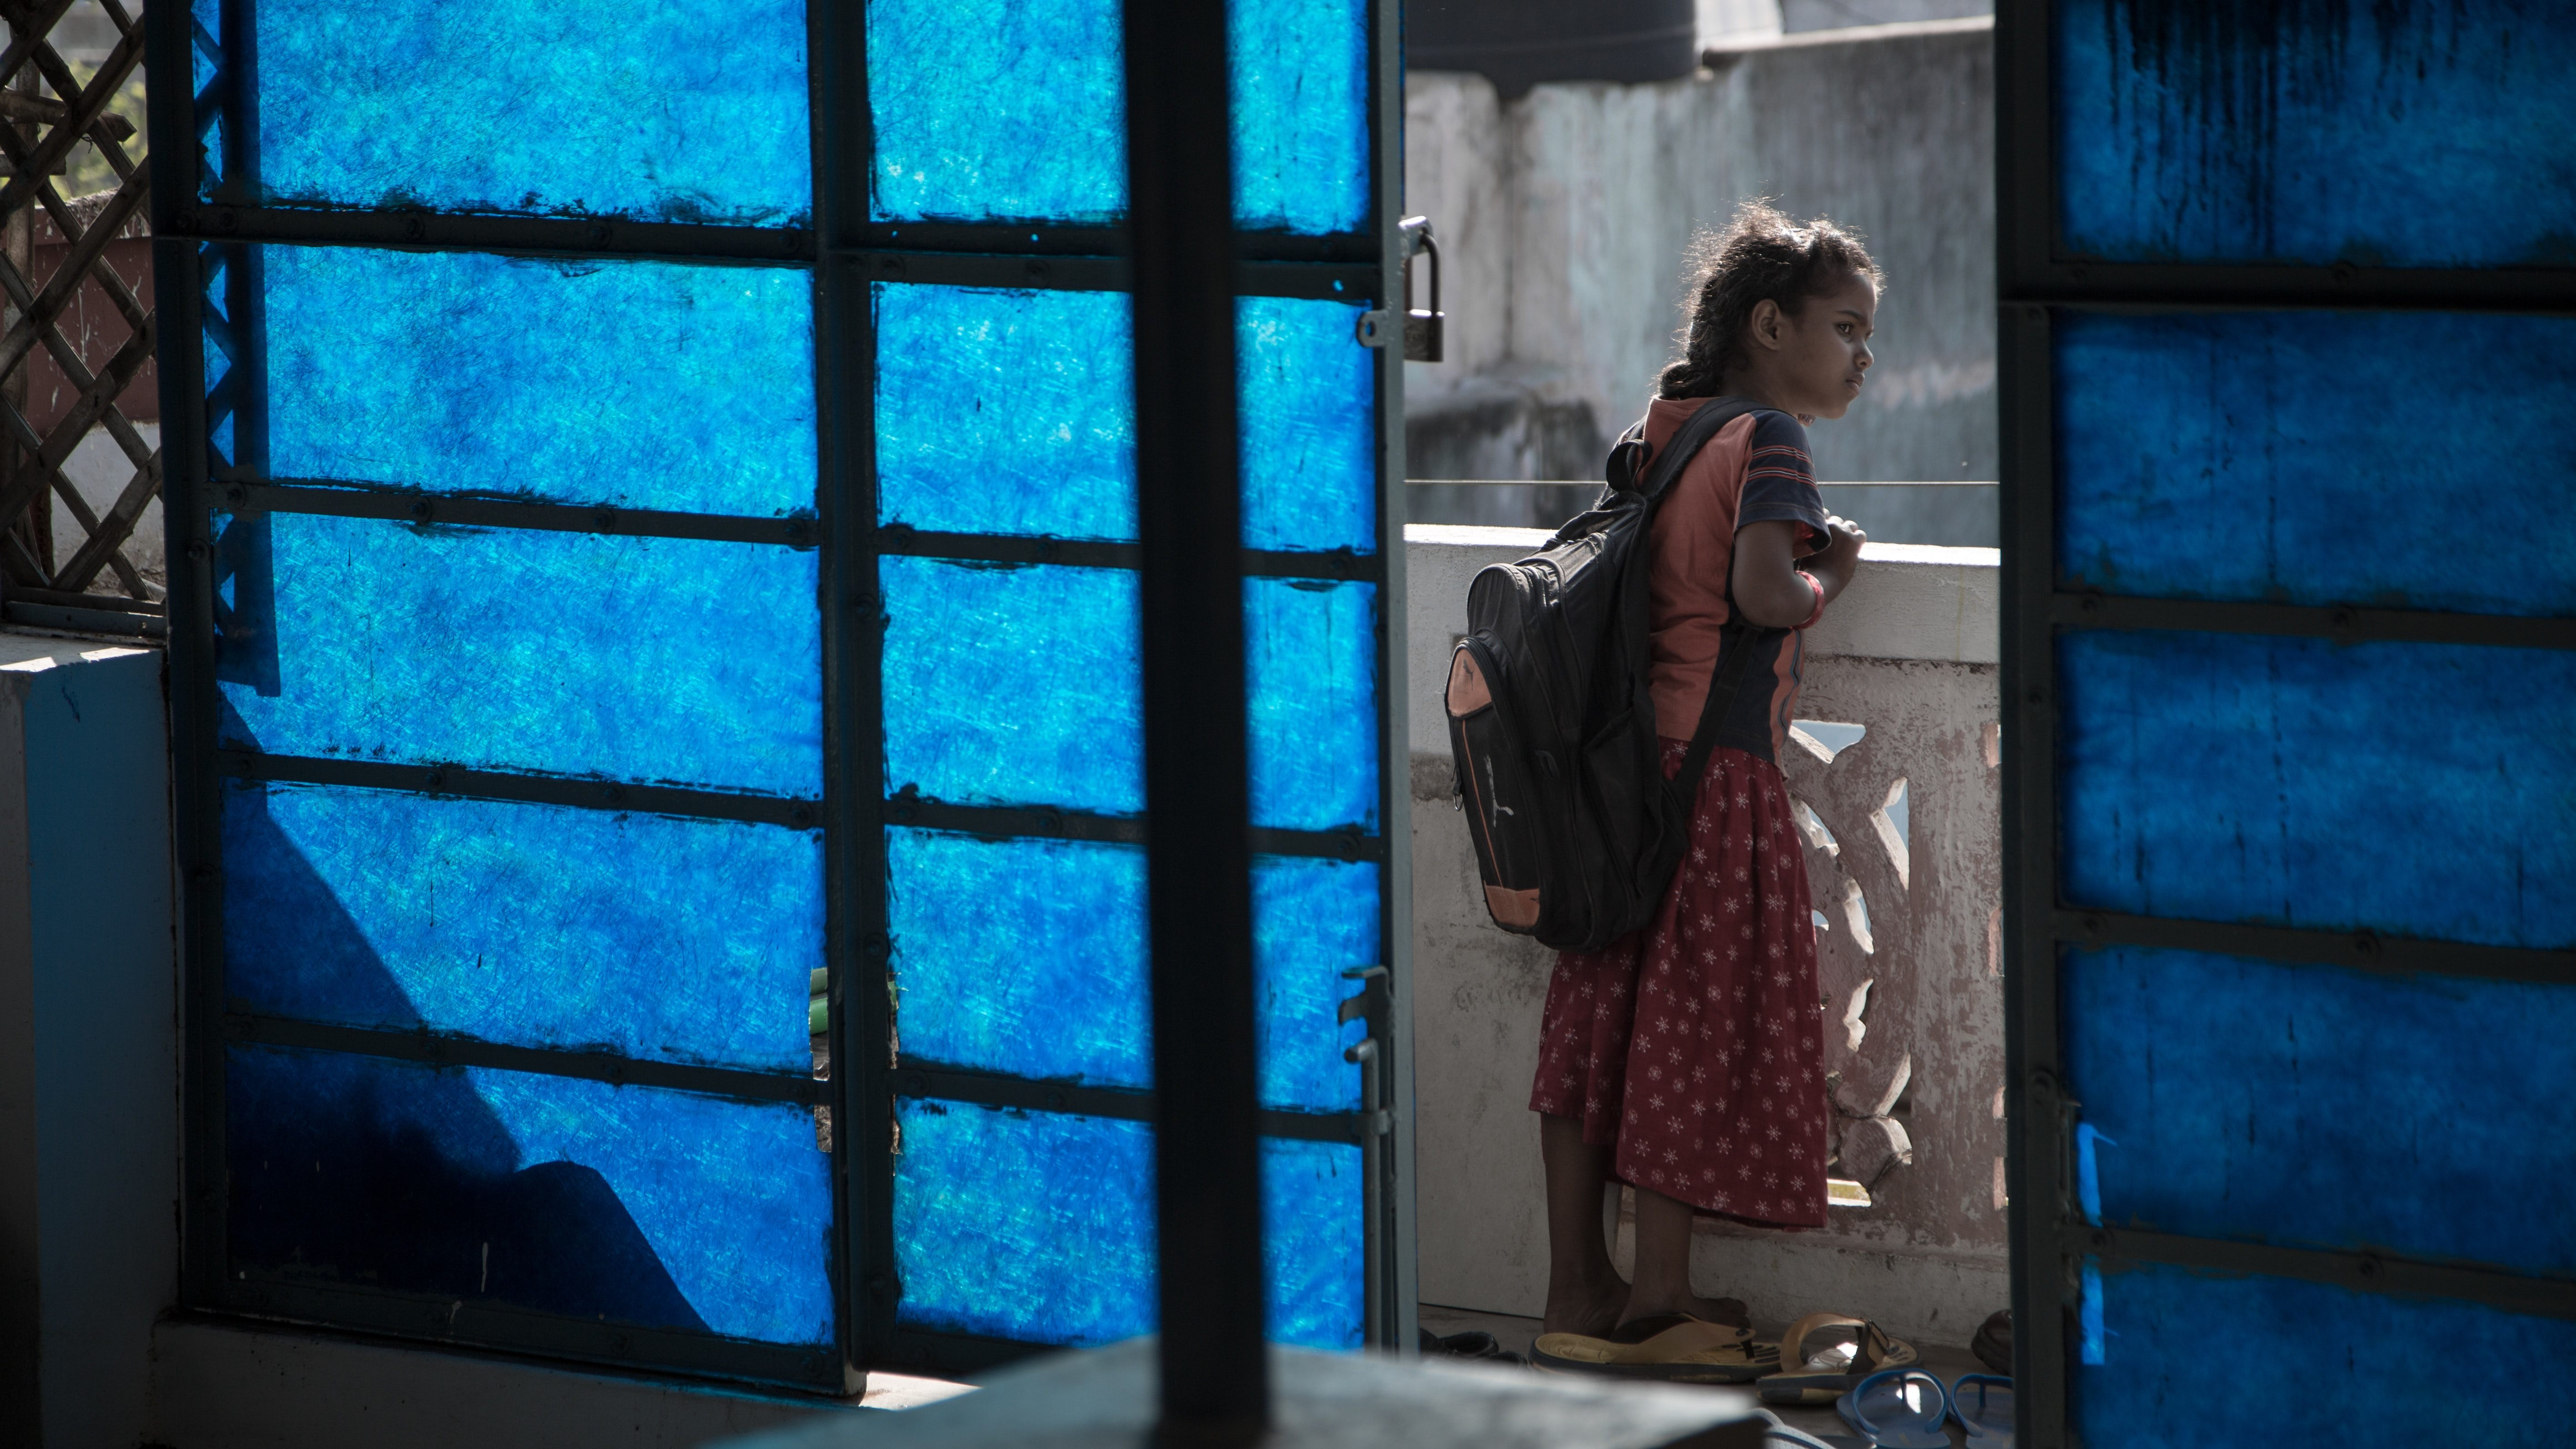 A girl, dressed for school, peers over the balcony outside of her home.